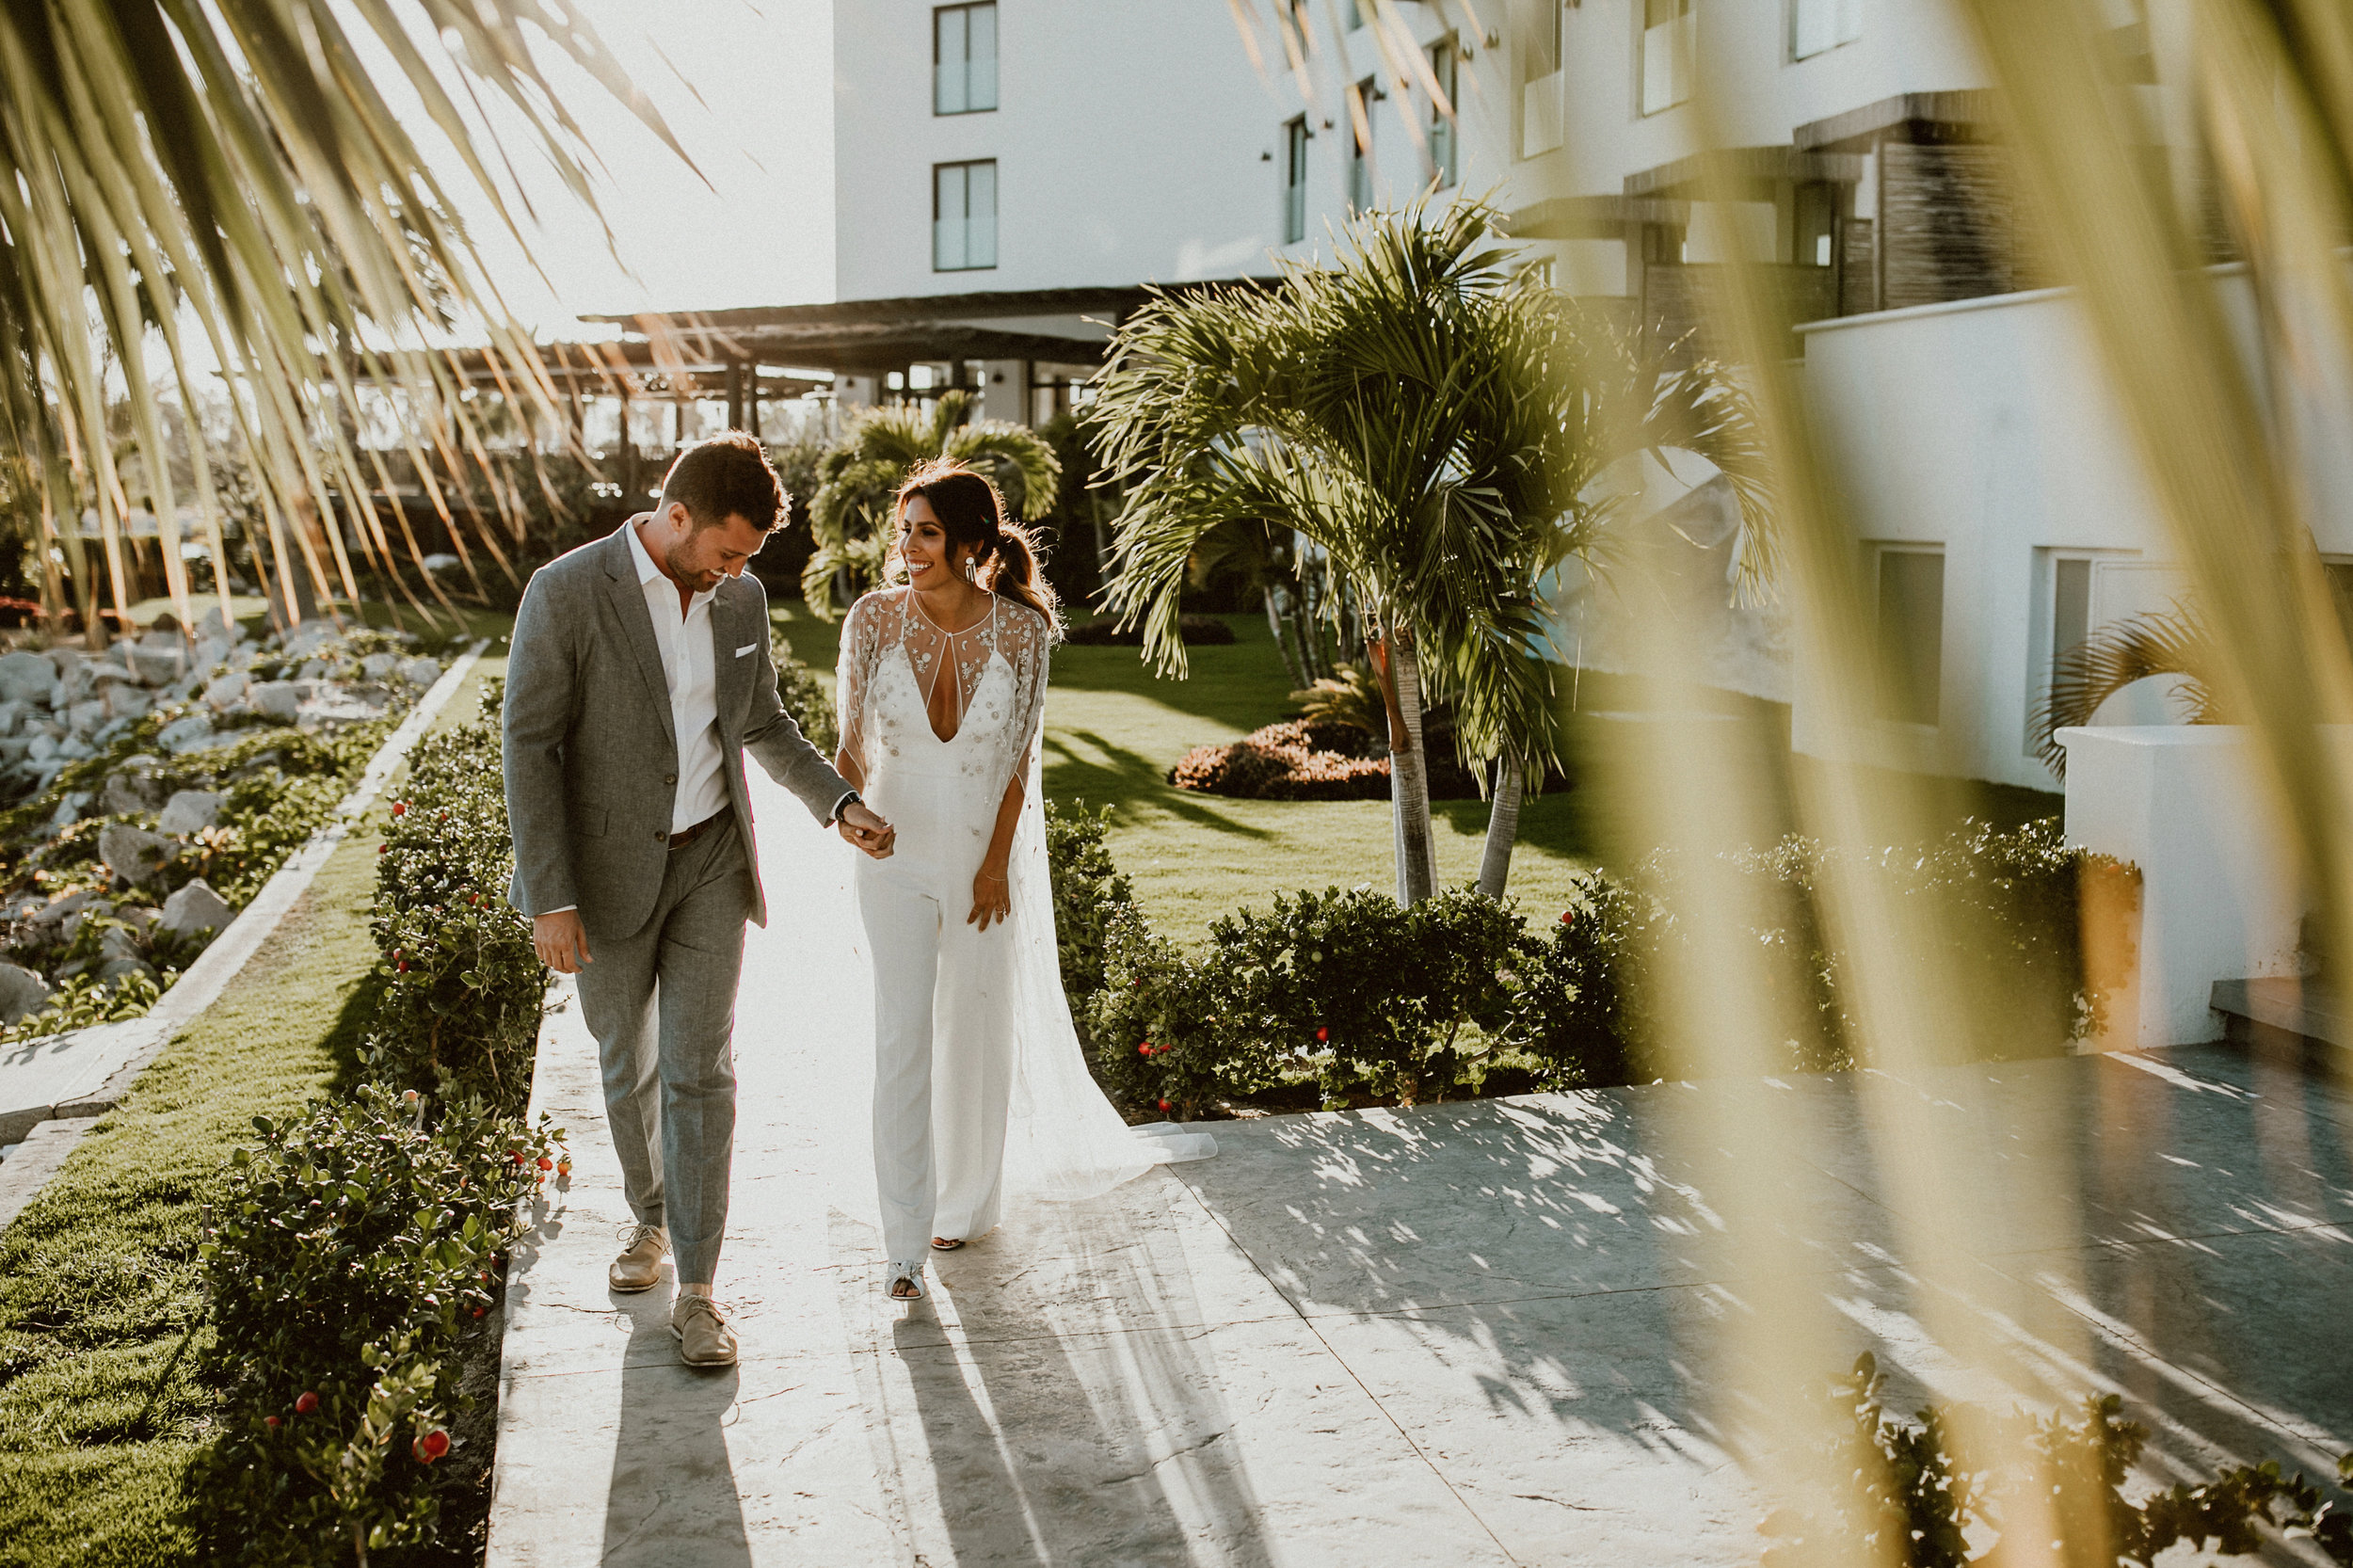 Andy + Ashley's Los Cabos Wedding Weekend - Welcome Party at El Ganzo Hotel |